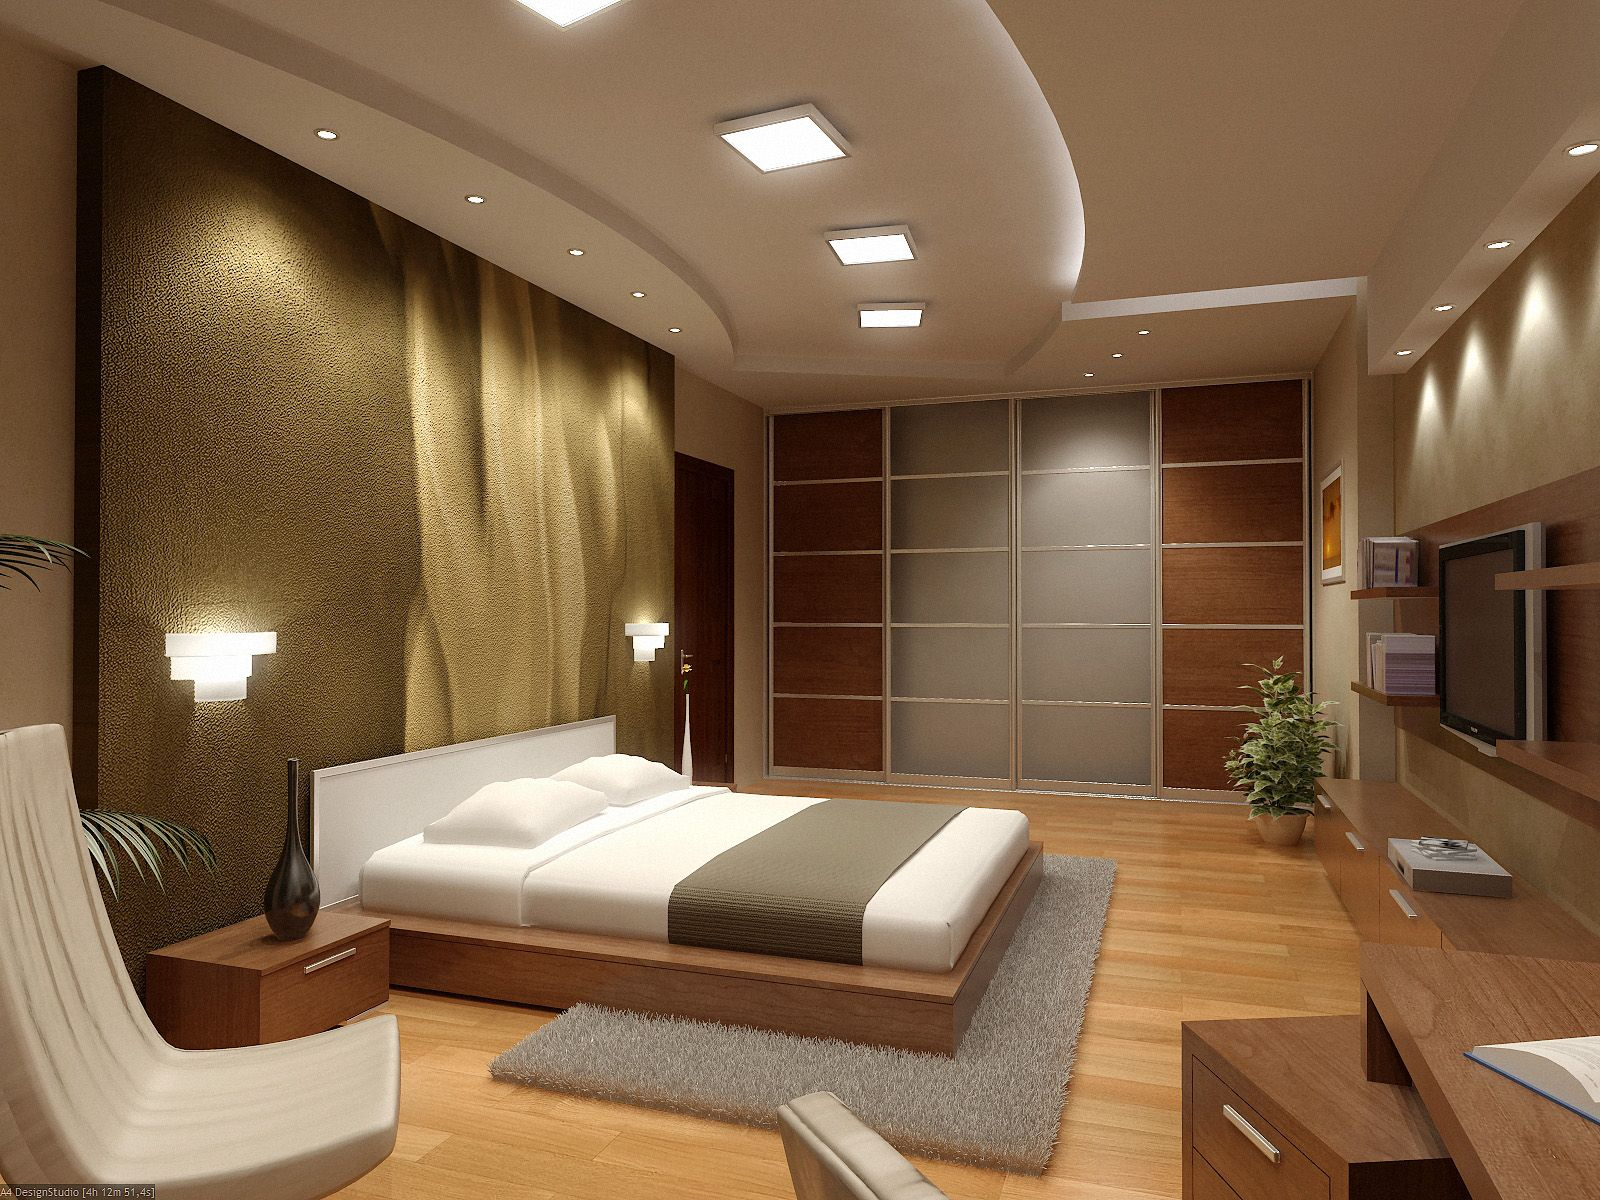 Outstanding Modern Bedroom Interior Design Ideas 1600 x 1200 · 367 kB · jpeg